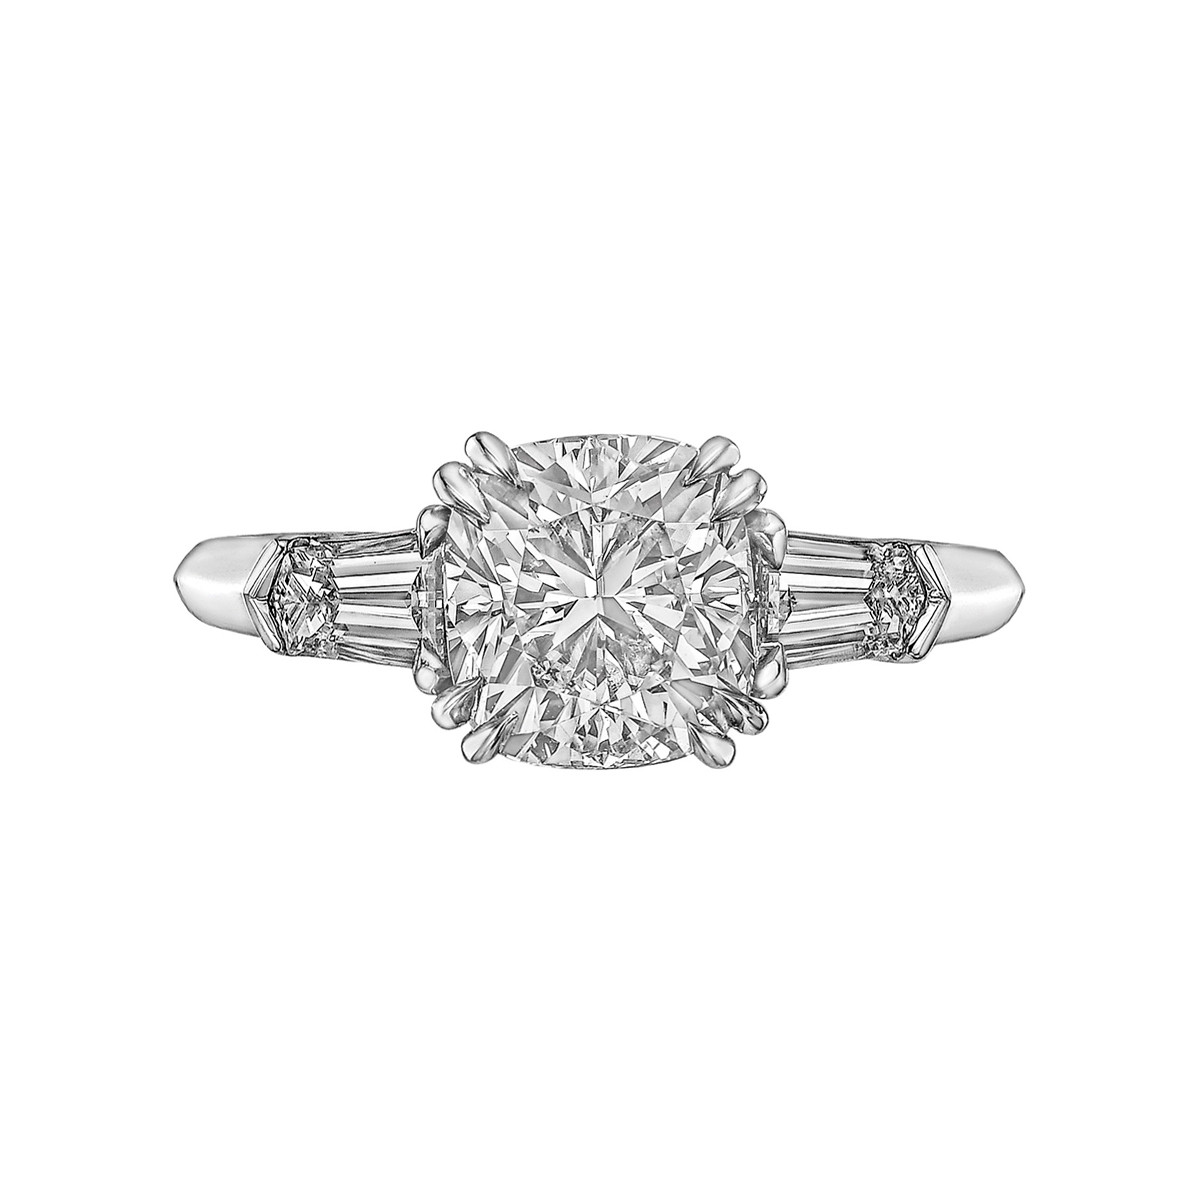 2.01ct Cushion-Cut Diamond Ring (G/SI1)